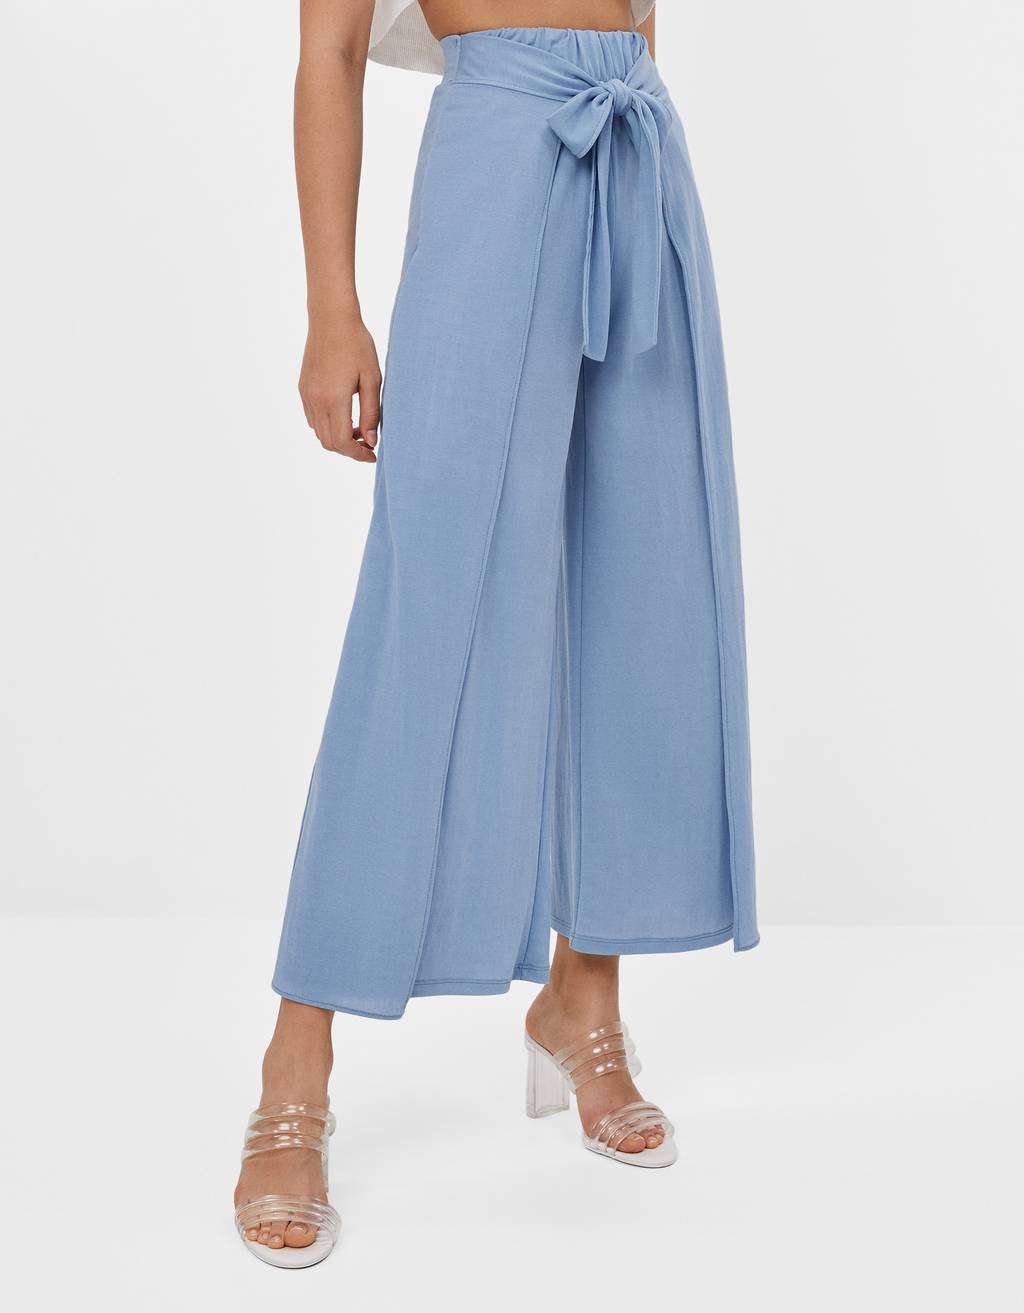 Culotte trousers with tie waist